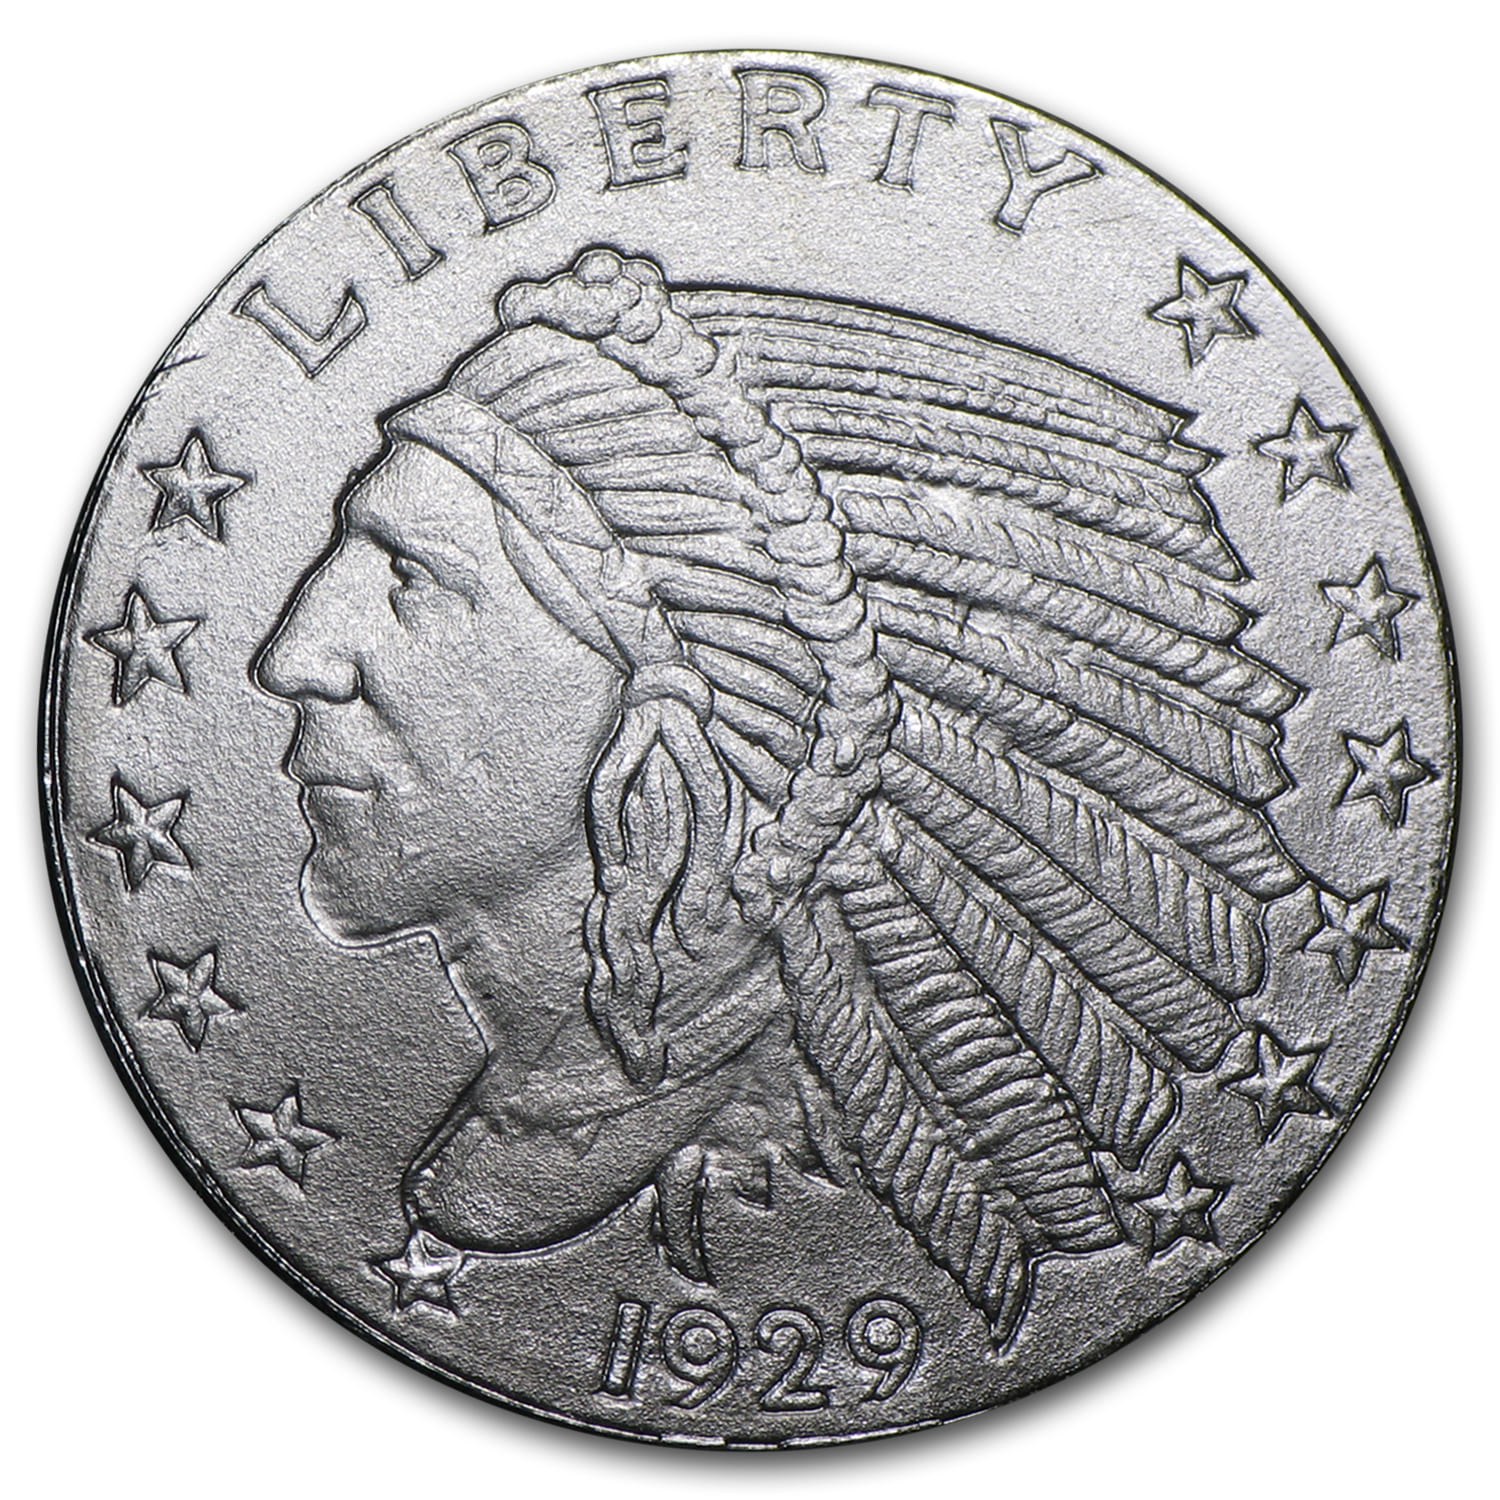 1/10 oz Silver Round - Incuse Indian